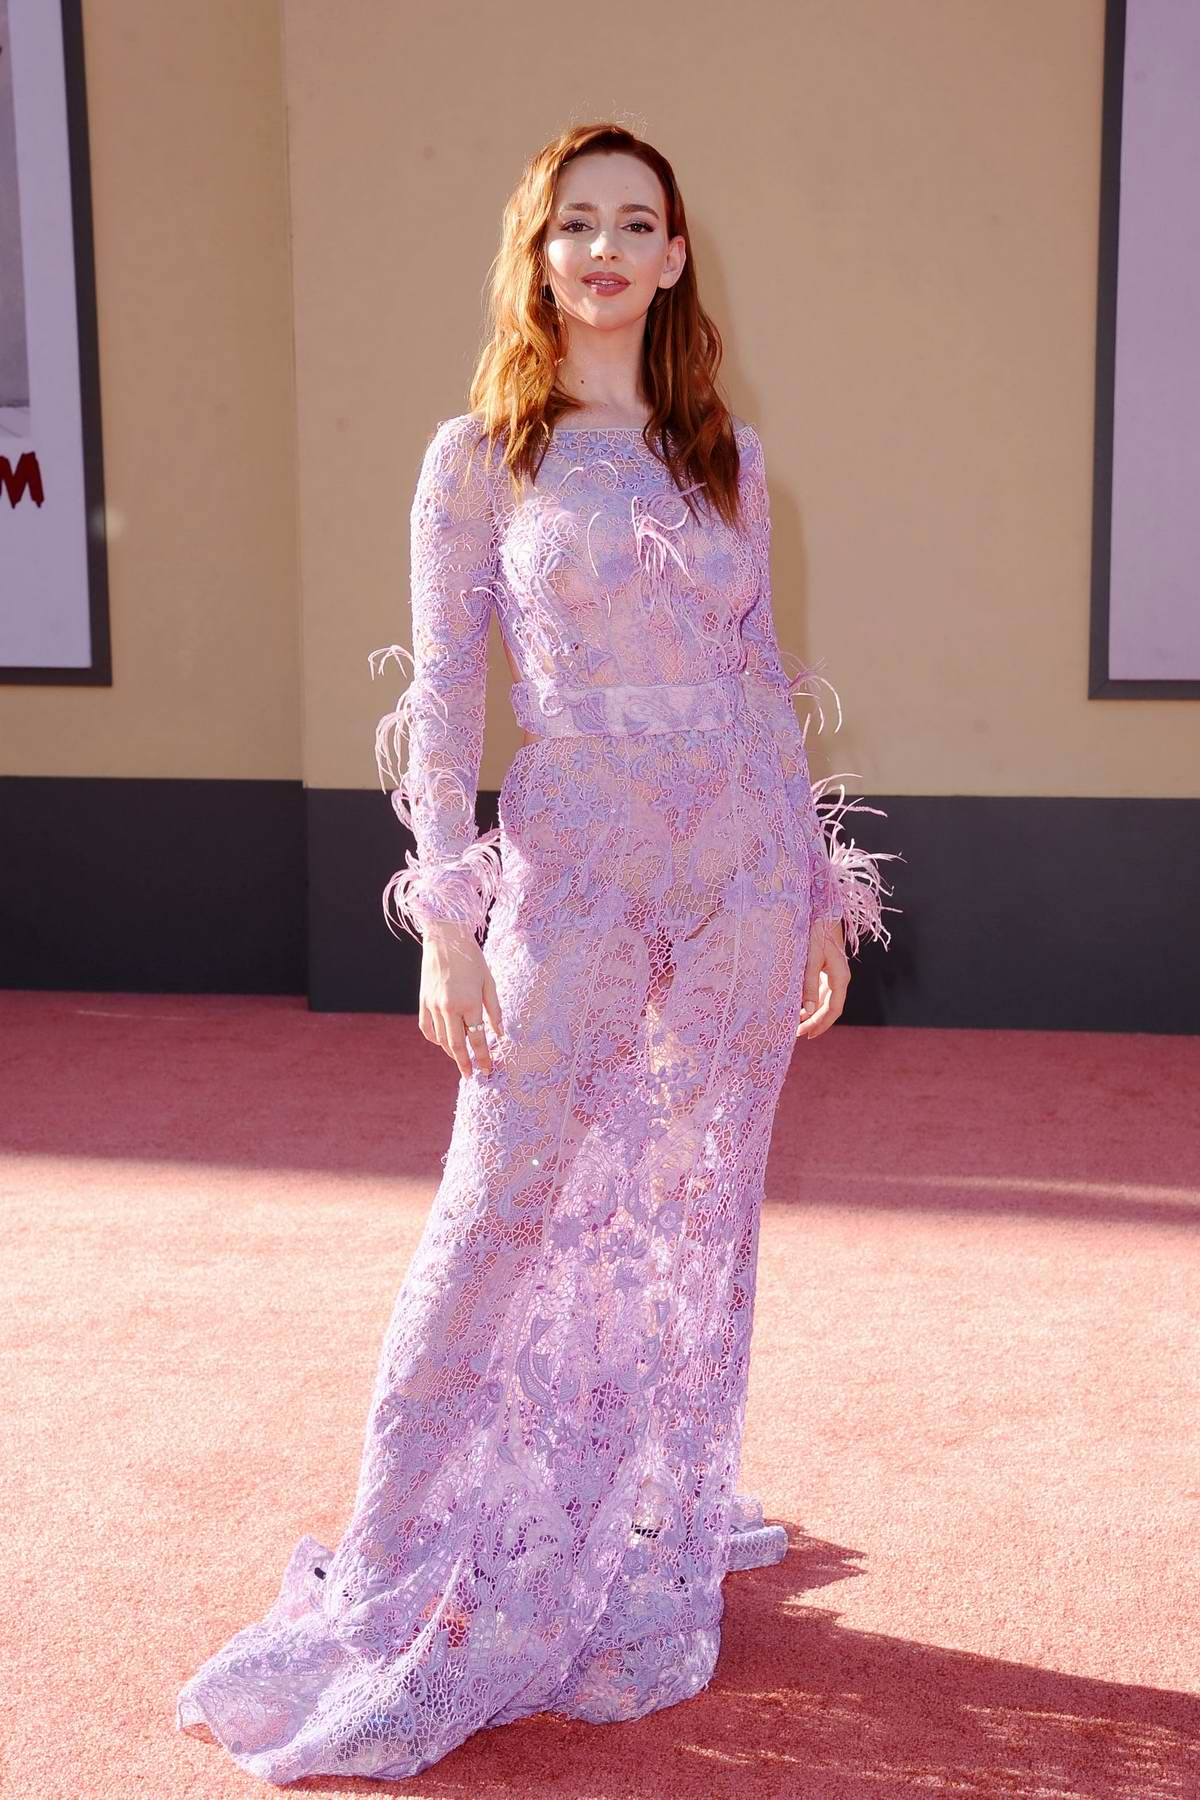 Natasha Bassett attends the Los Angeles Premiere of 'Once Upon a Time in Hollywood' in Hollywood, California